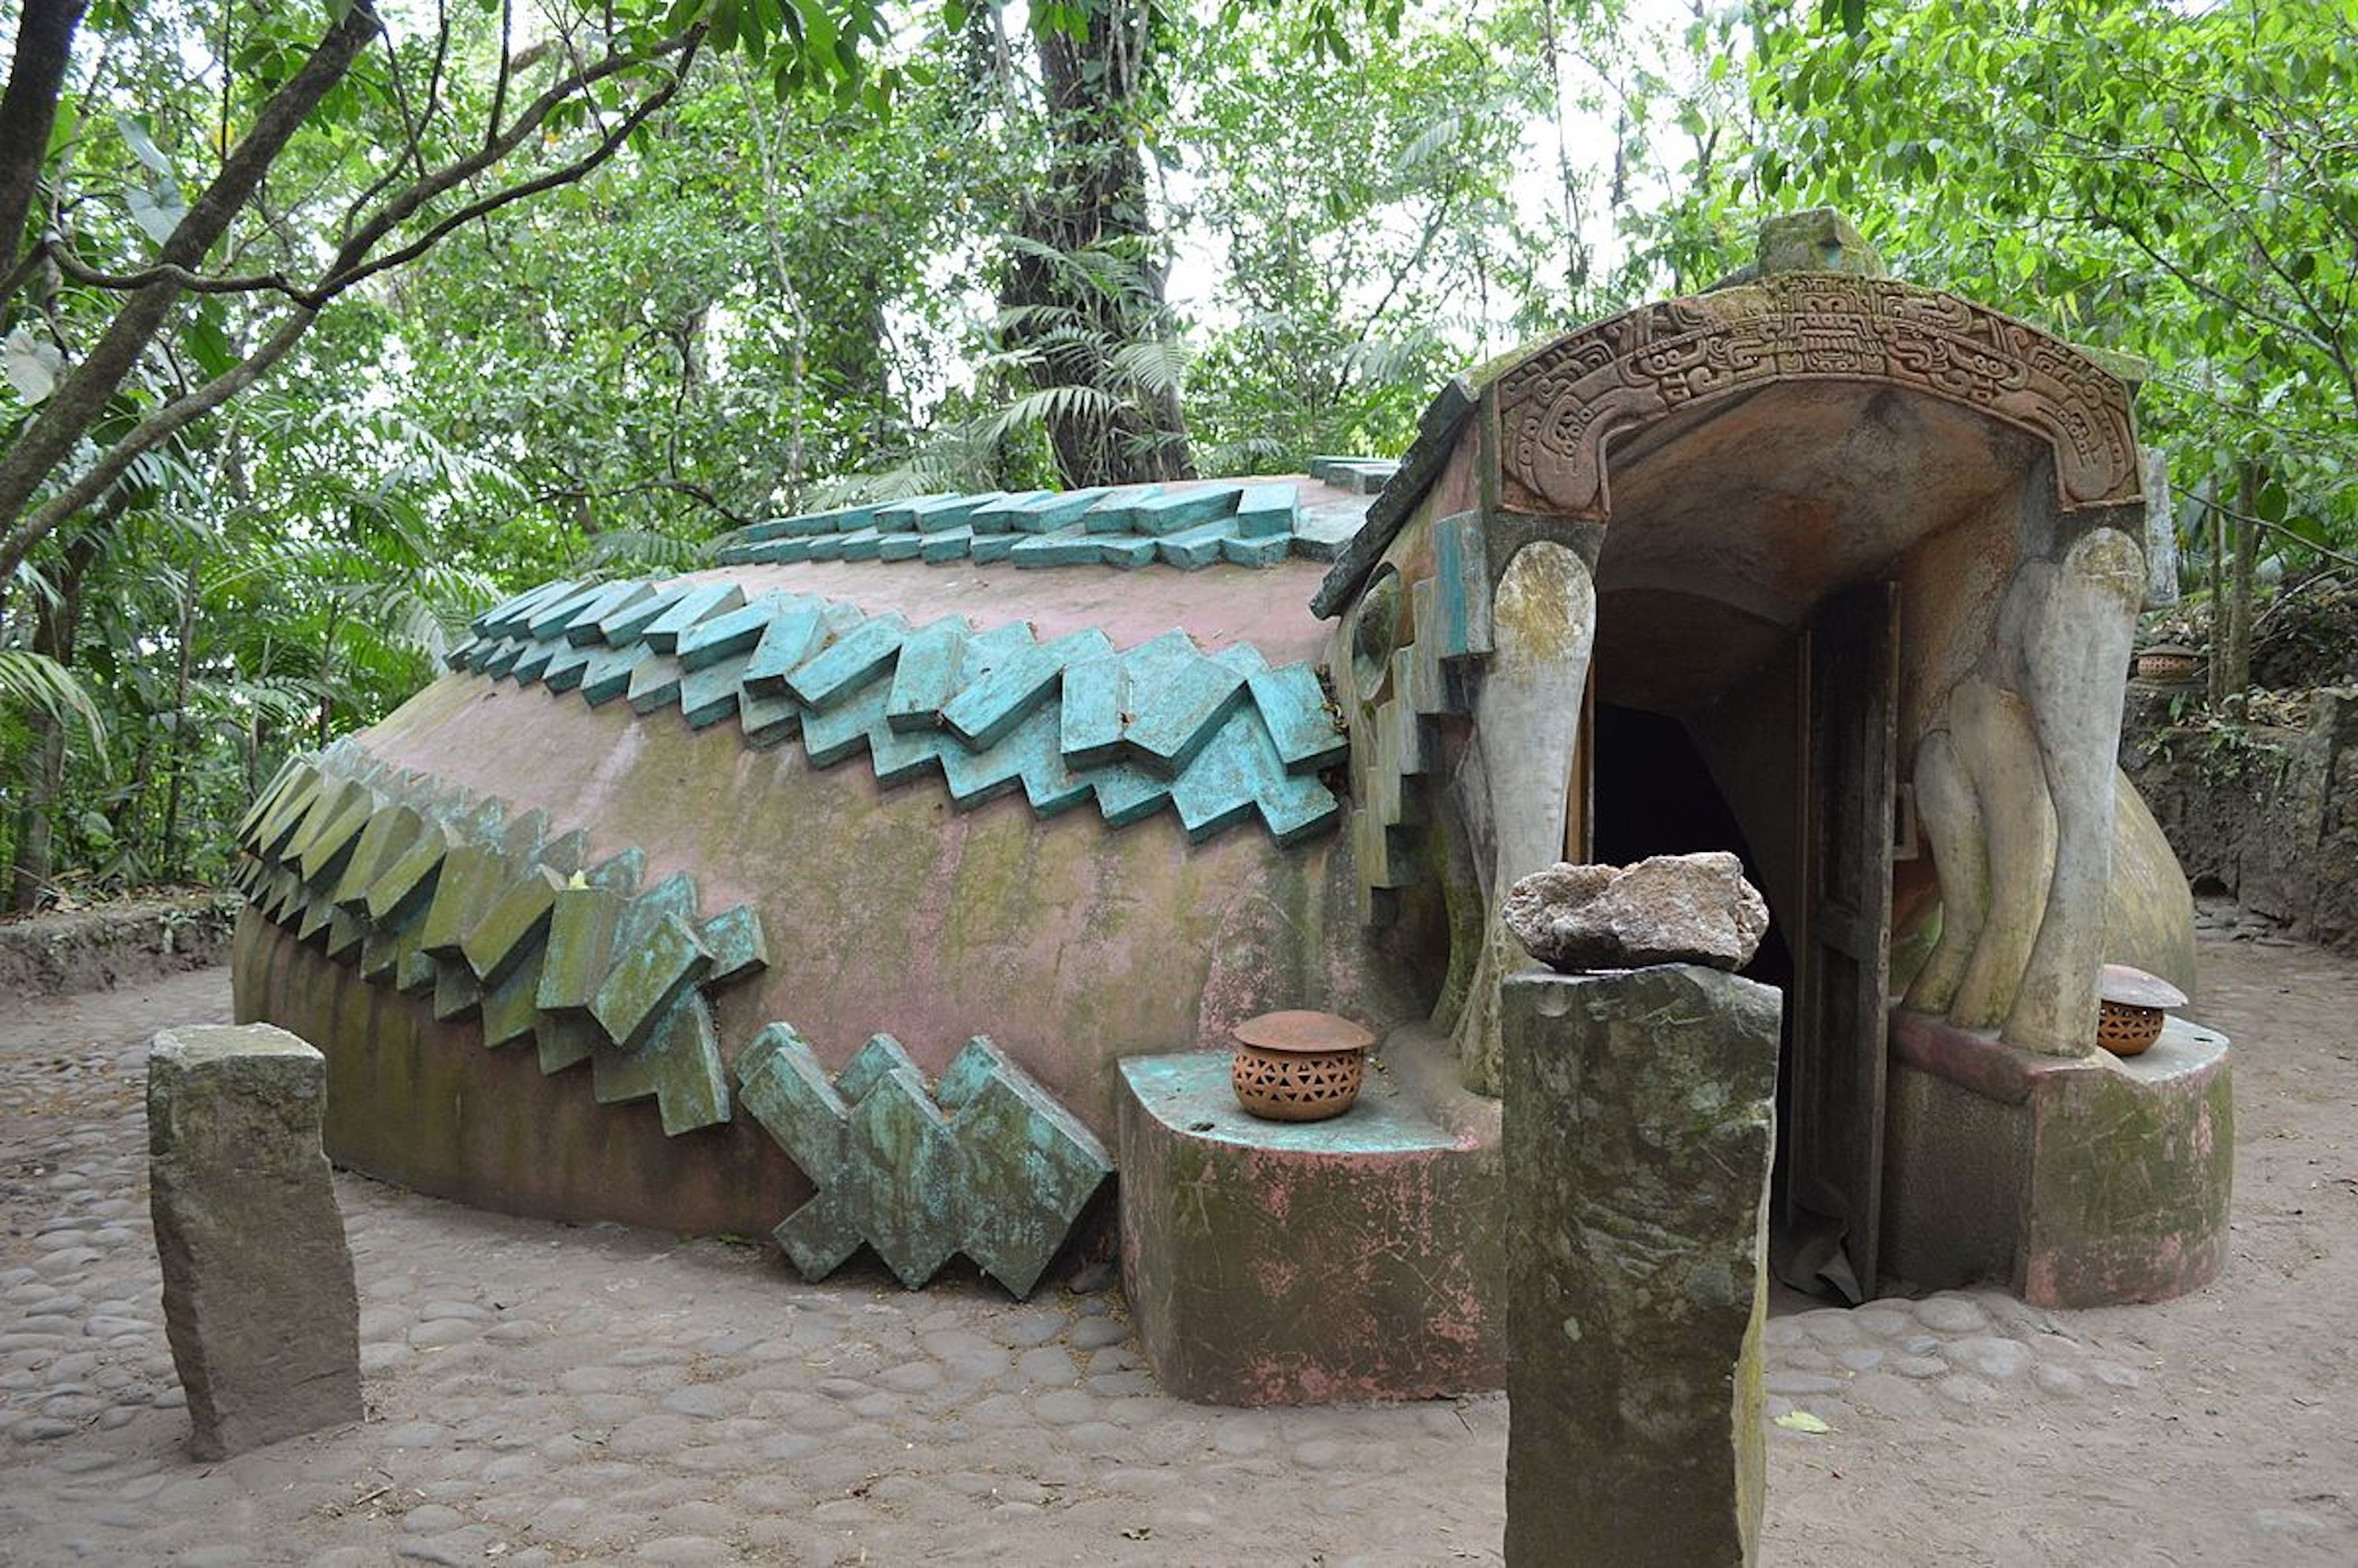 Snake-shaped temazcal in Mexico